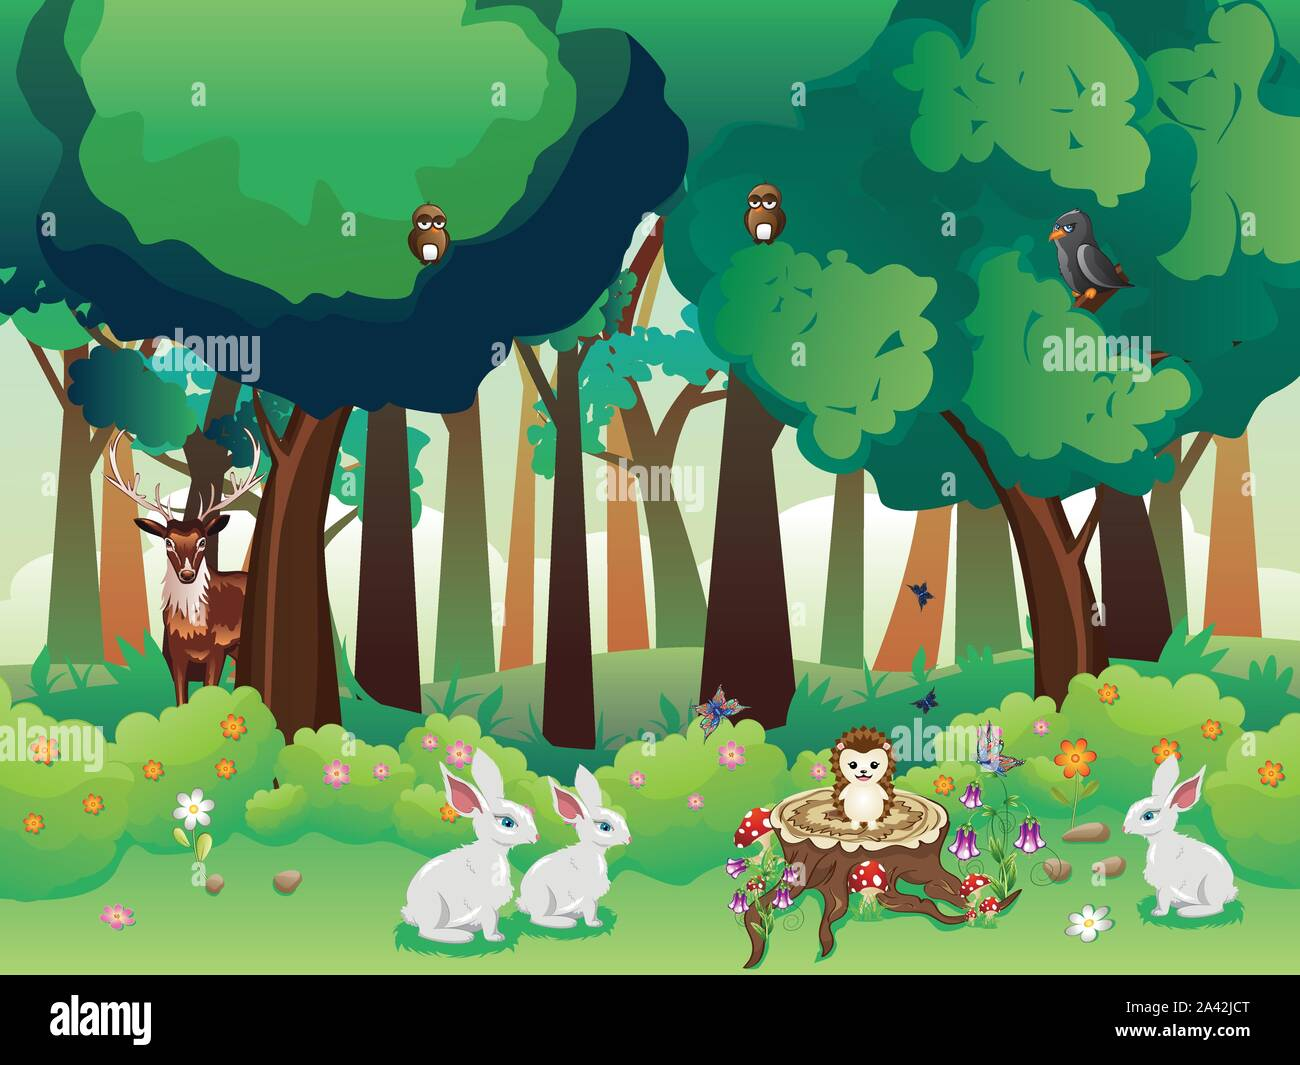 Cartoon Summer Forest Landscape With Green Shrubs Trees And Cute Animals Stock Vector Image Art Alamy Tree clipart cartoon forest material big tree illustration. https www alamy com cartoon summer forest landscape with green shrubs trees and cute animals image329513992 html